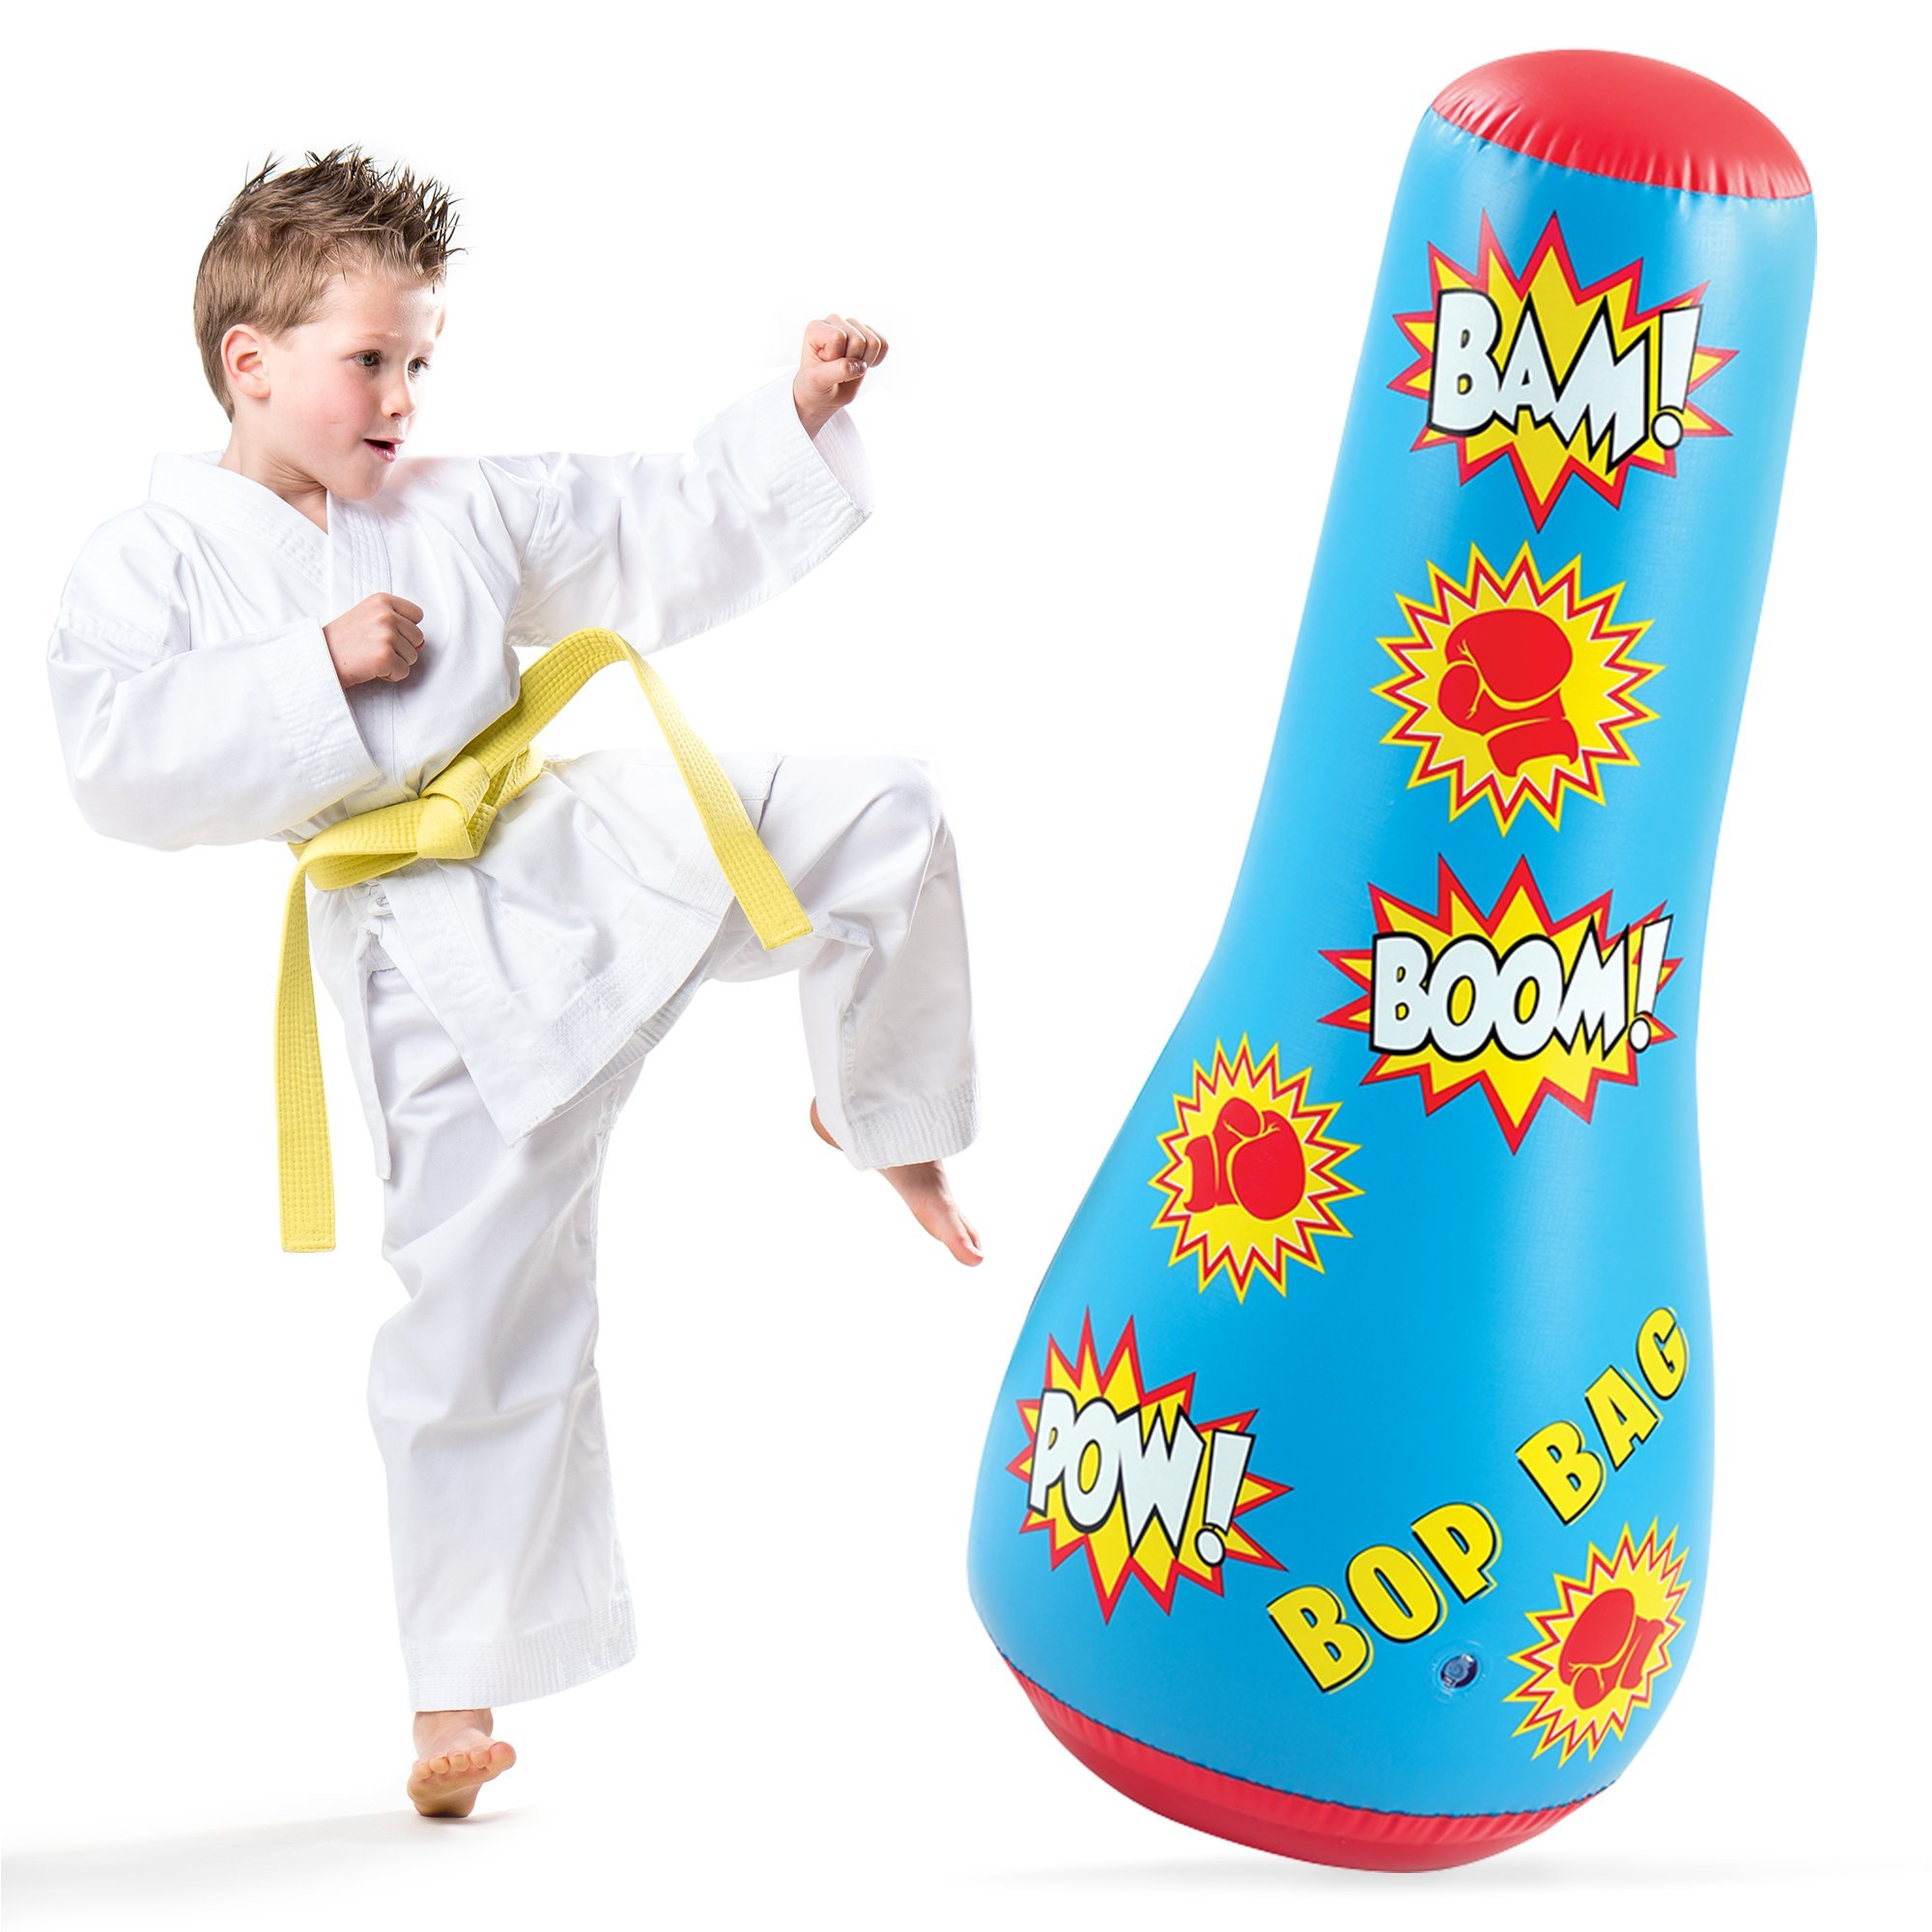 KLEEGER Inflatable Punching Bag For Kids: Giant Free Standing Boxing Toy For Children, Air Bop Bag For Boys & Girls, Exercise & Stress Relief